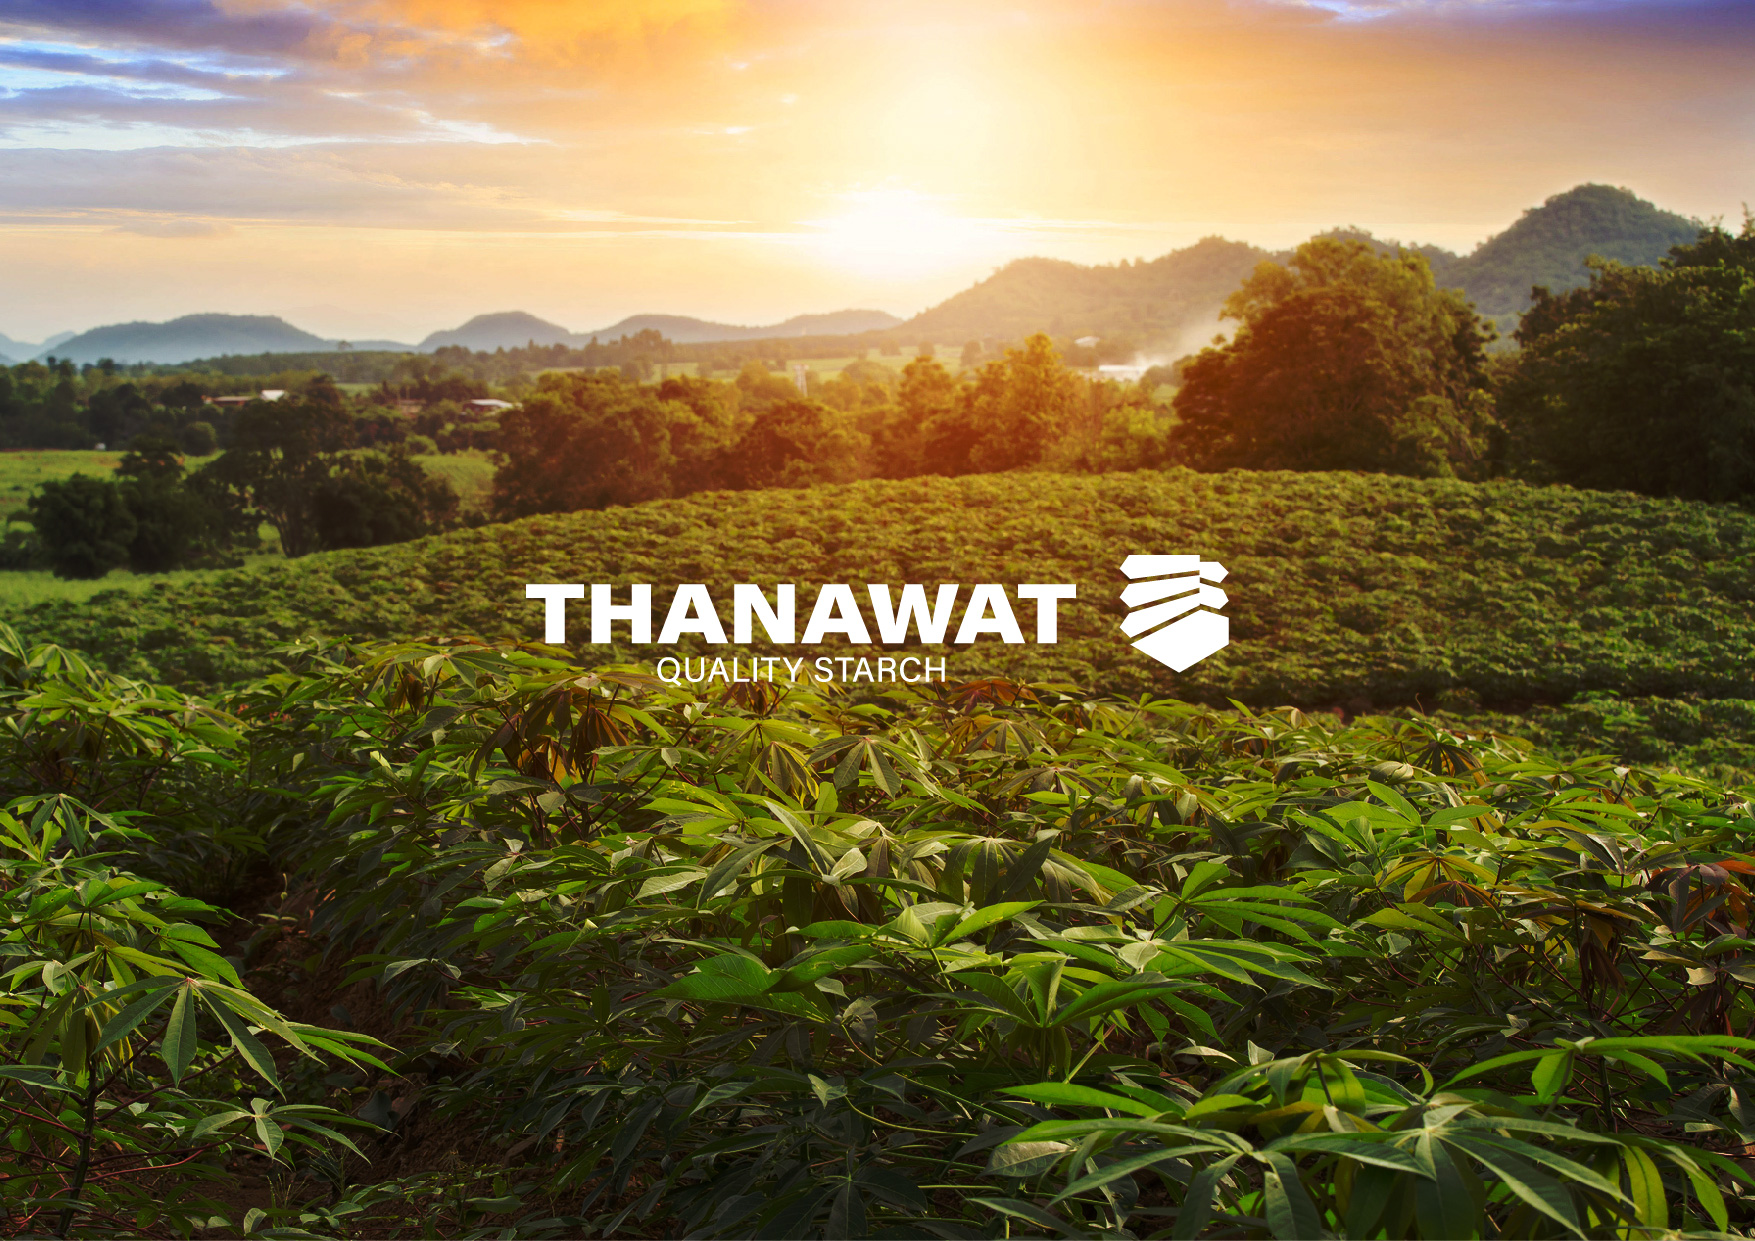 Thanawat Quality Starch and Chakangrao Starch Manufacturer Re-Branding